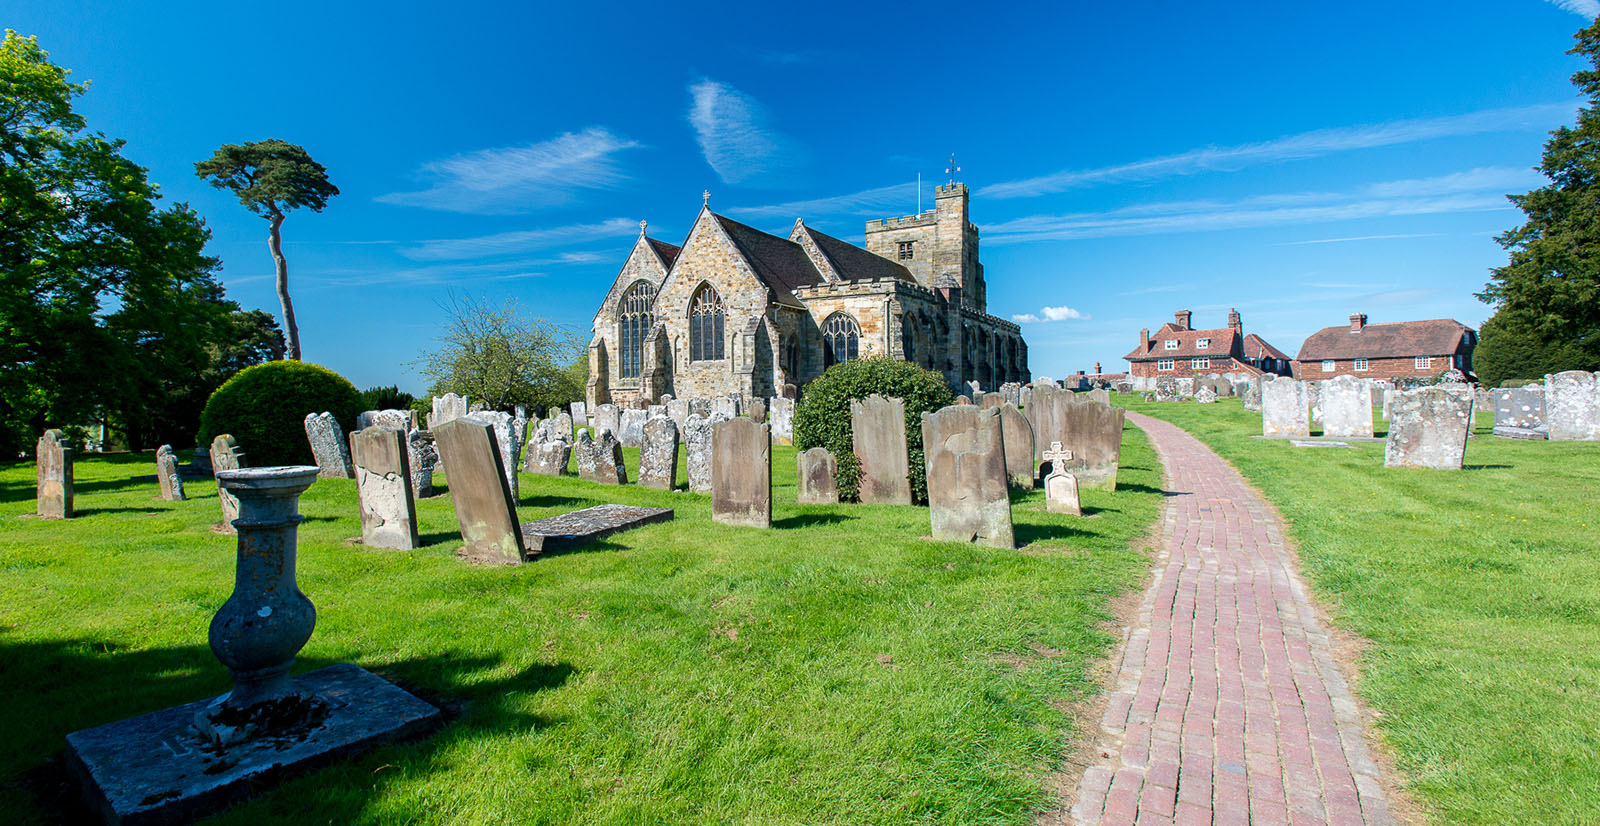 Get the best views of the Weald from St Mary's Church, Goudhurst by David Hodgkinson